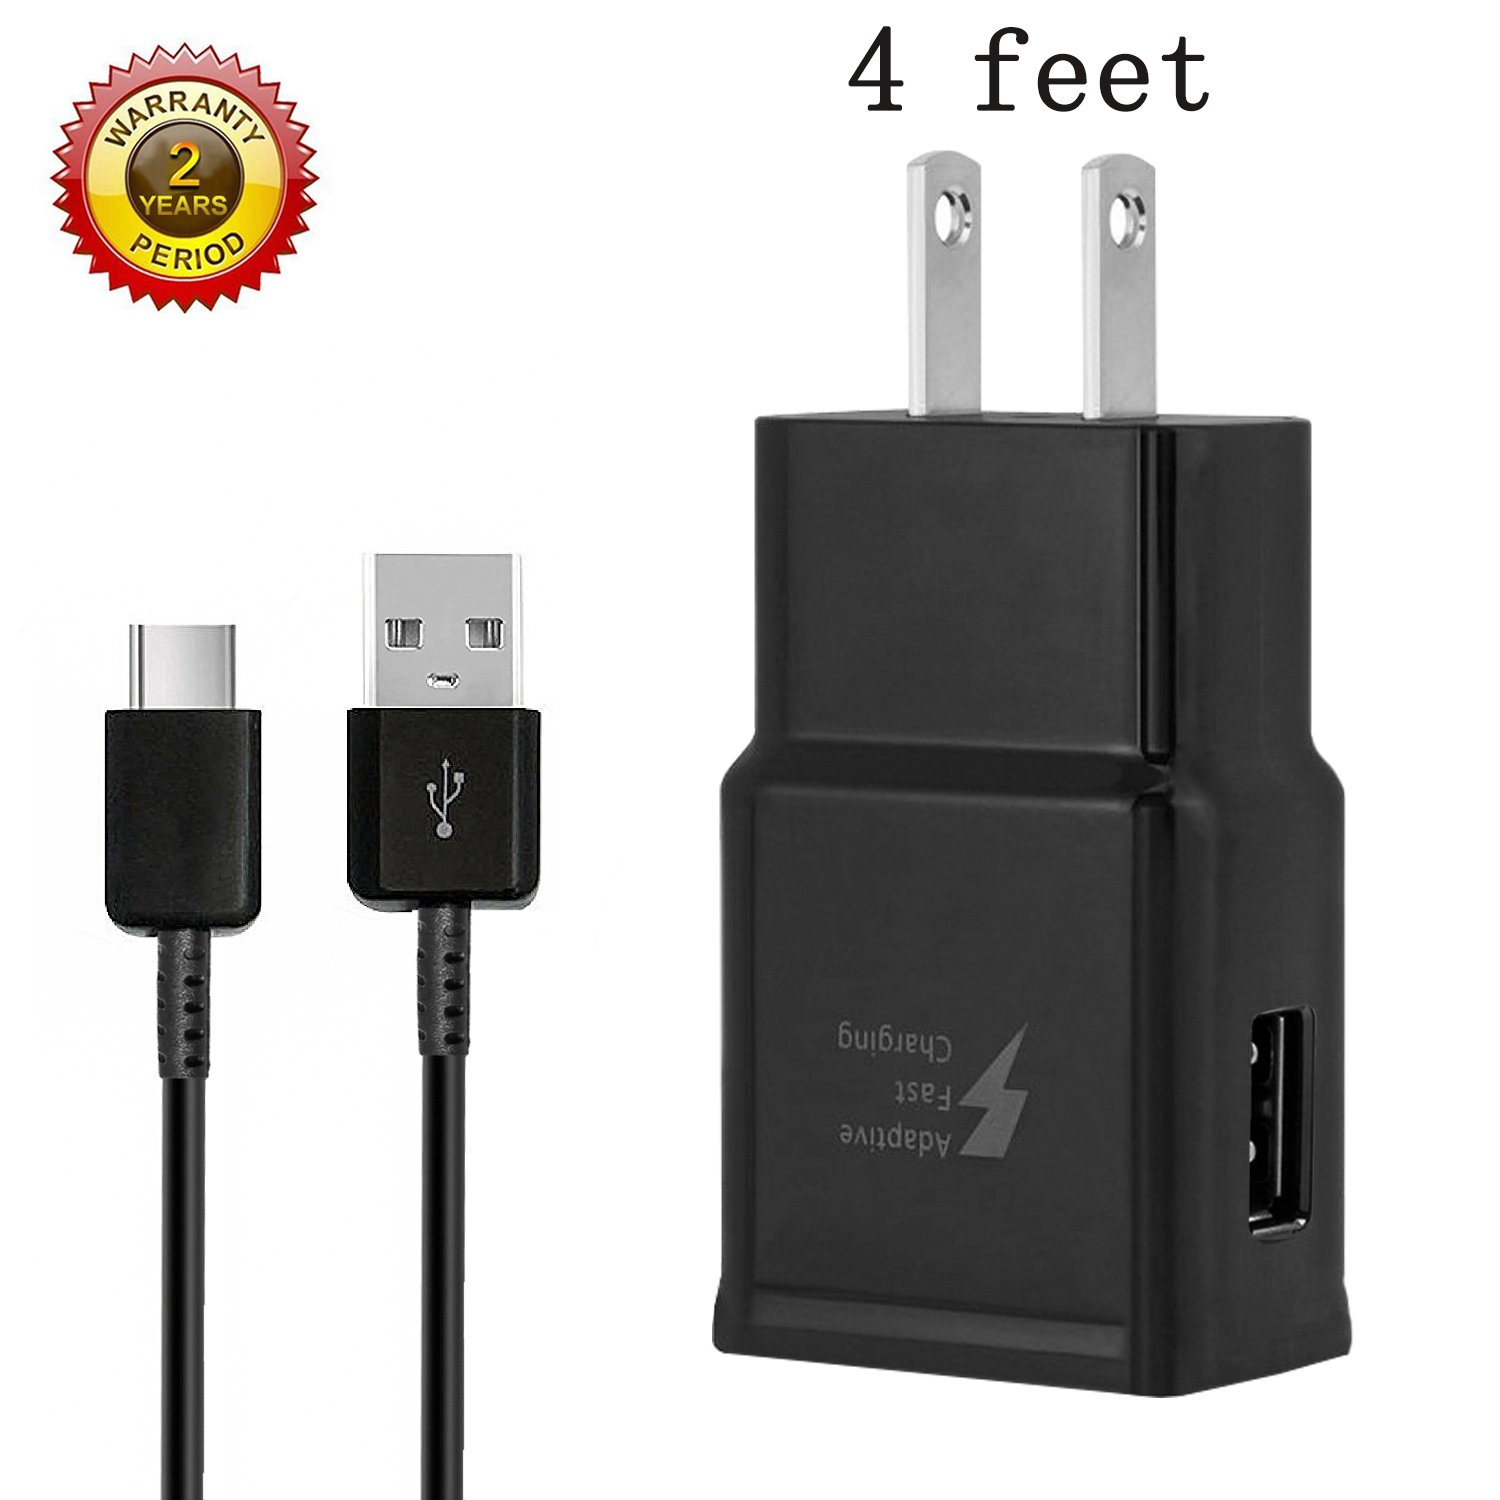 Fast Charge Adaptive Fast Charger Kit for Samsung Galaxy S9/S8/S8 Plus/Note8,MBLAI USB Type C Fast Charging Kit True Digital Adaptive Fast Charging (Black (Wall Charger+C Cable))